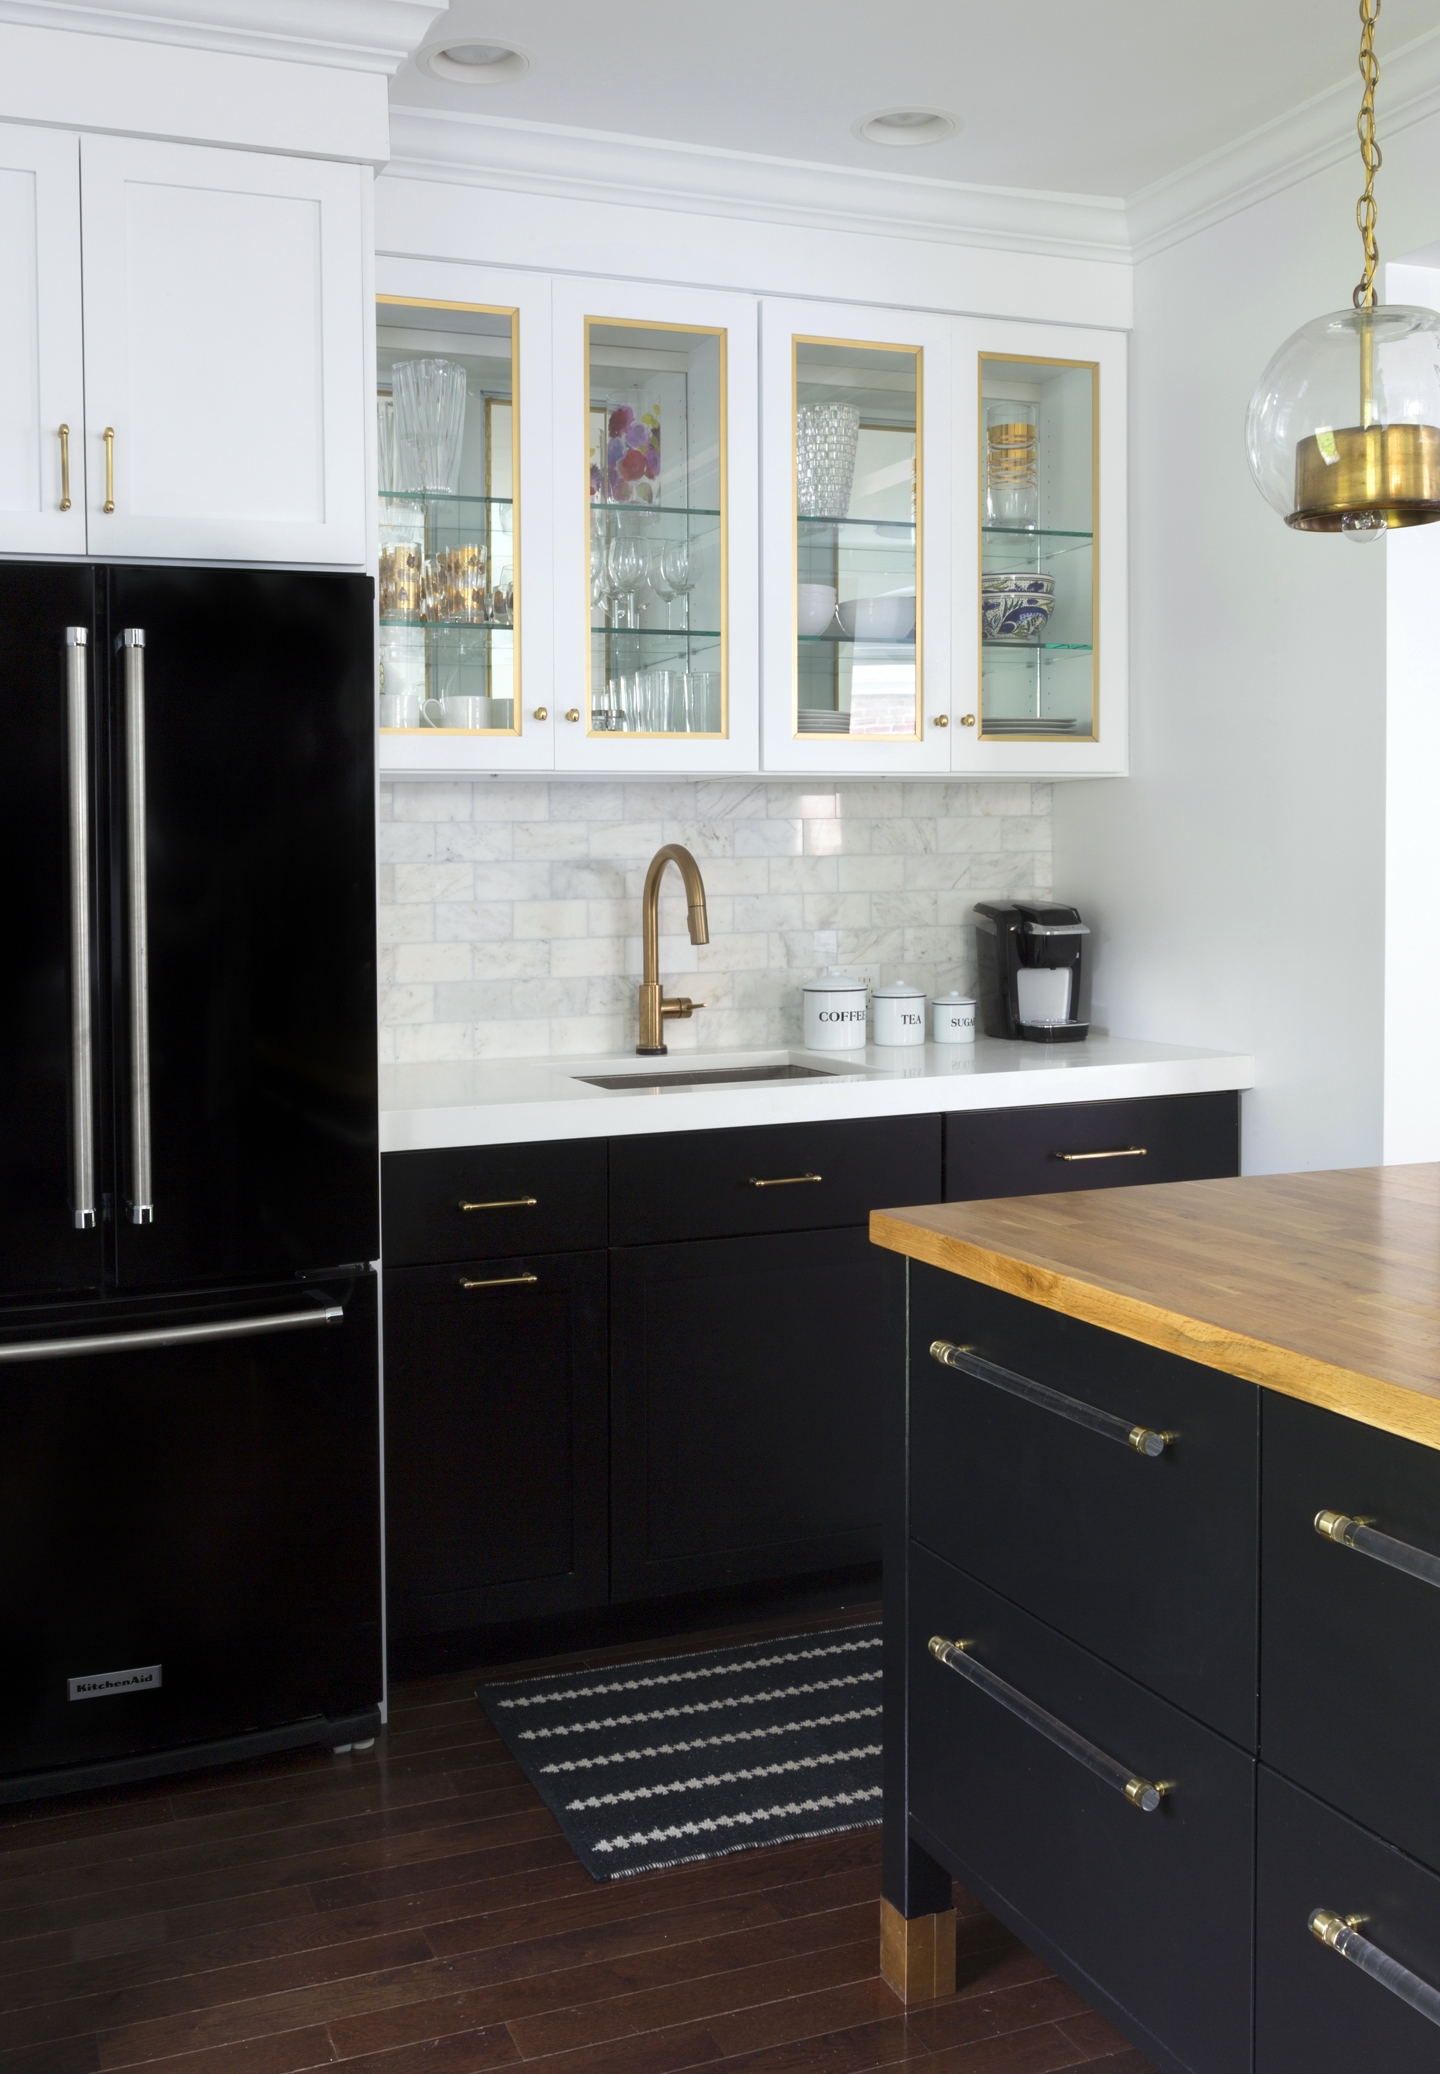 Black Kitchen Cabinets Gold Hardware1440 X 2074